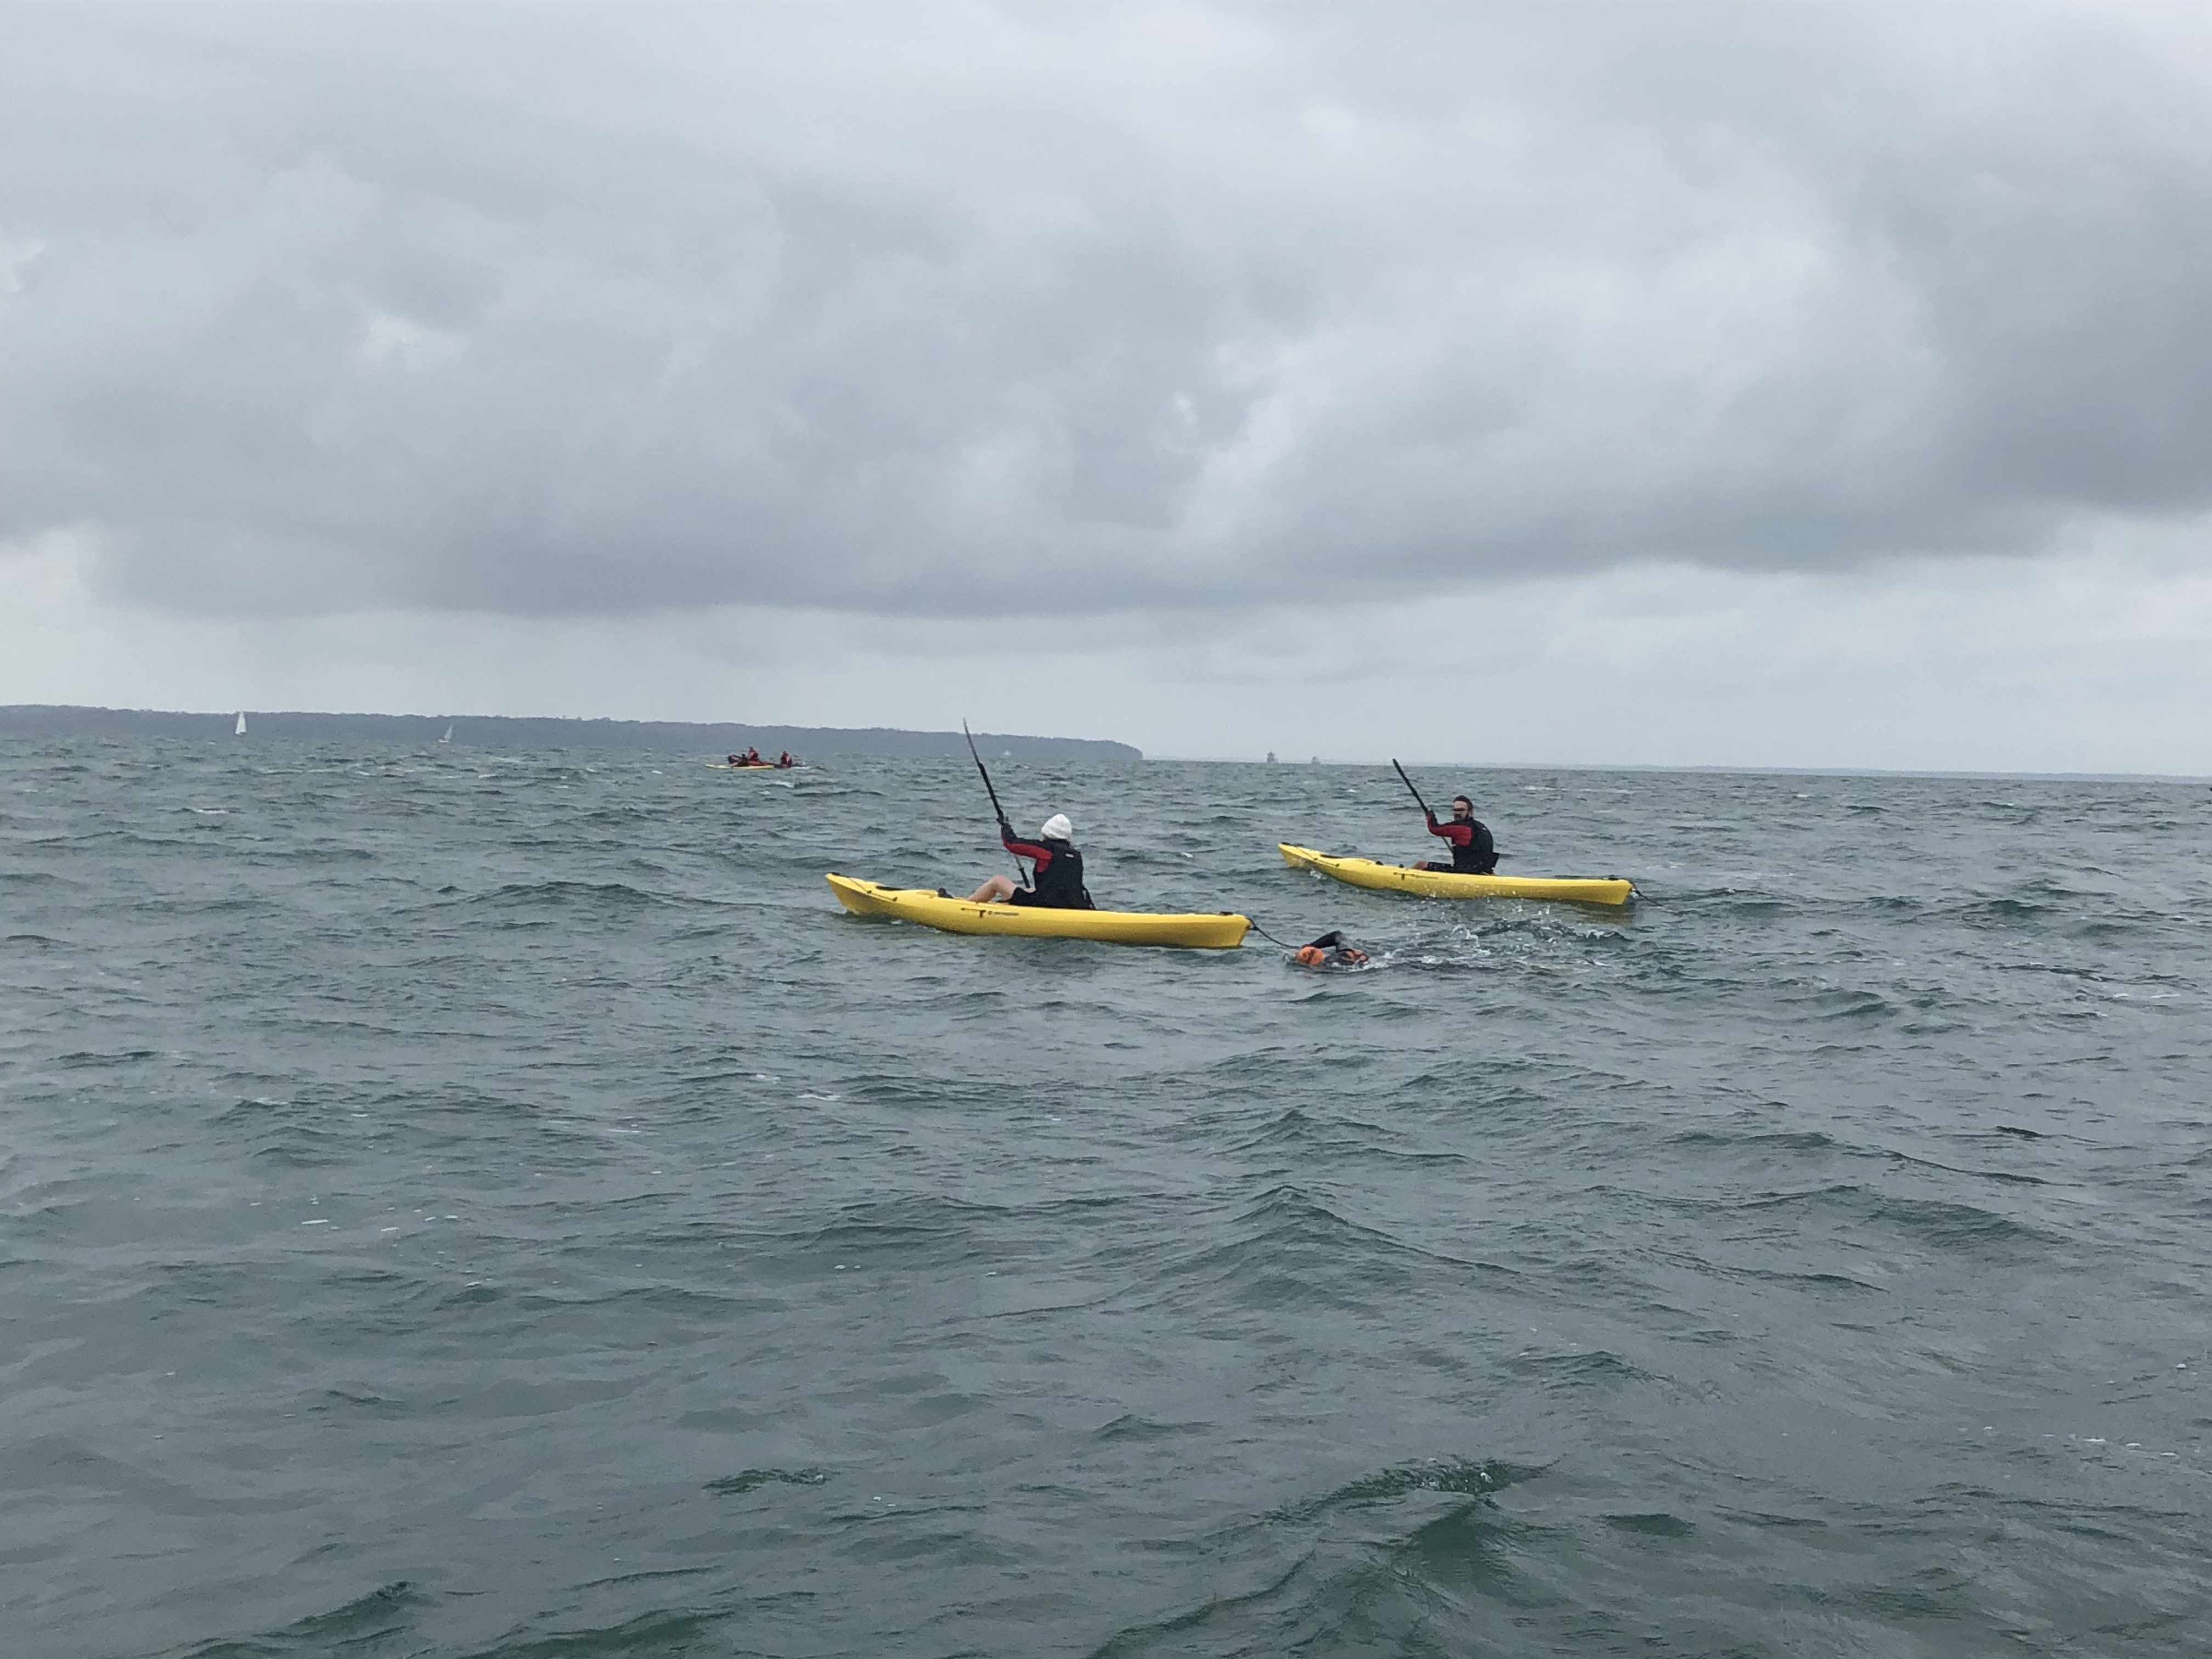 Billy swimming with a kayaker in front and another alongside